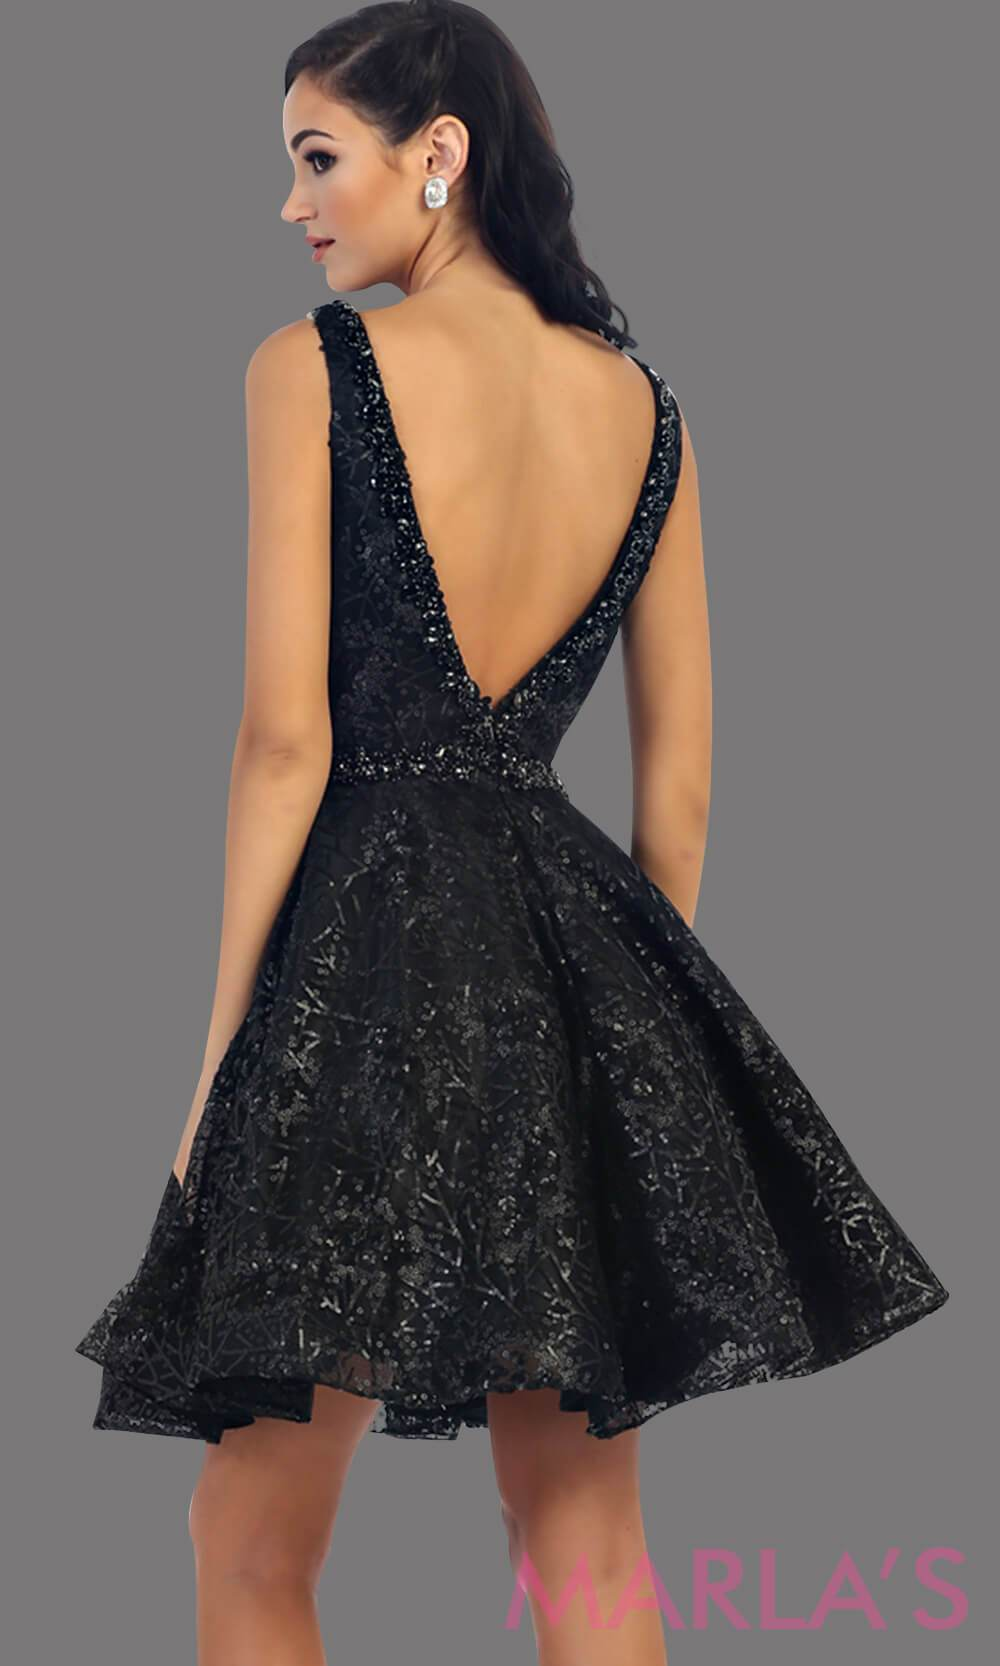 7438-Back of short black dress with deep V neck and back. This is a perfect grade 8 grad dress, graduation dress, black wedding guest dress, short prom dress or even damas dress. Available in plus sizes